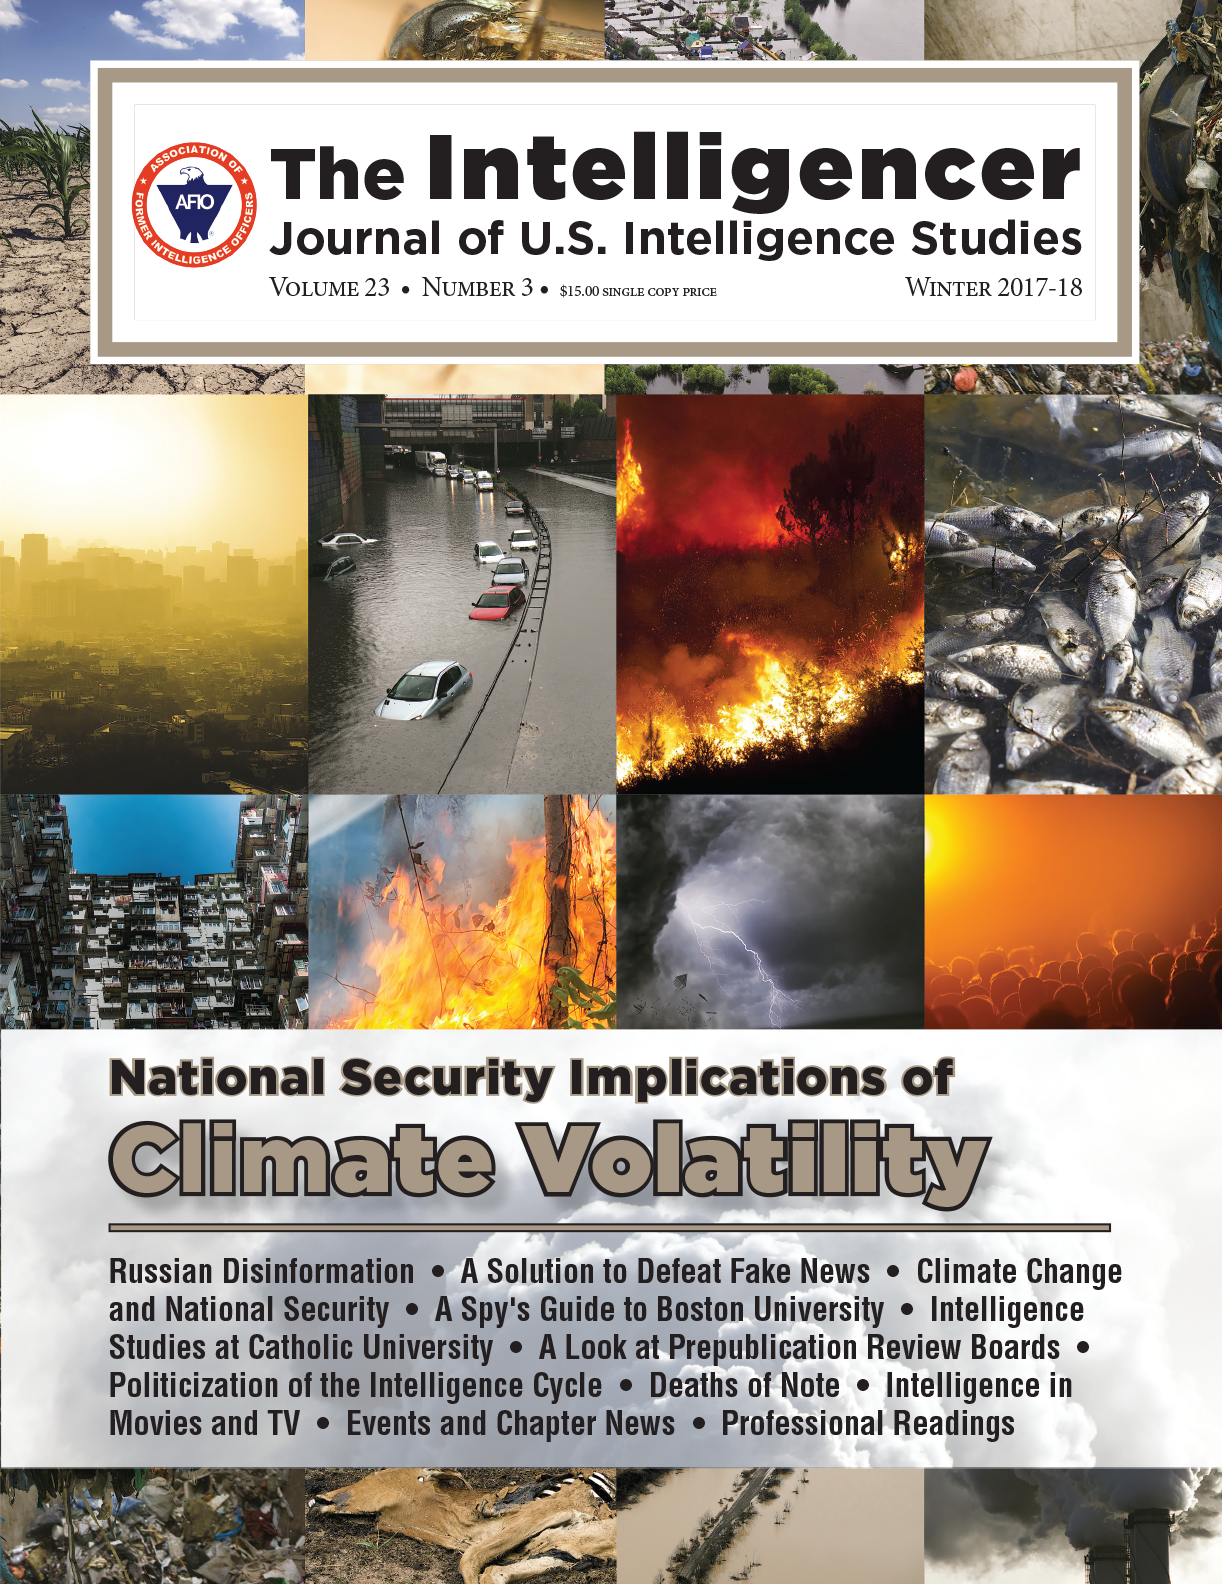 AFIOs Guide to the Study of Intelligence